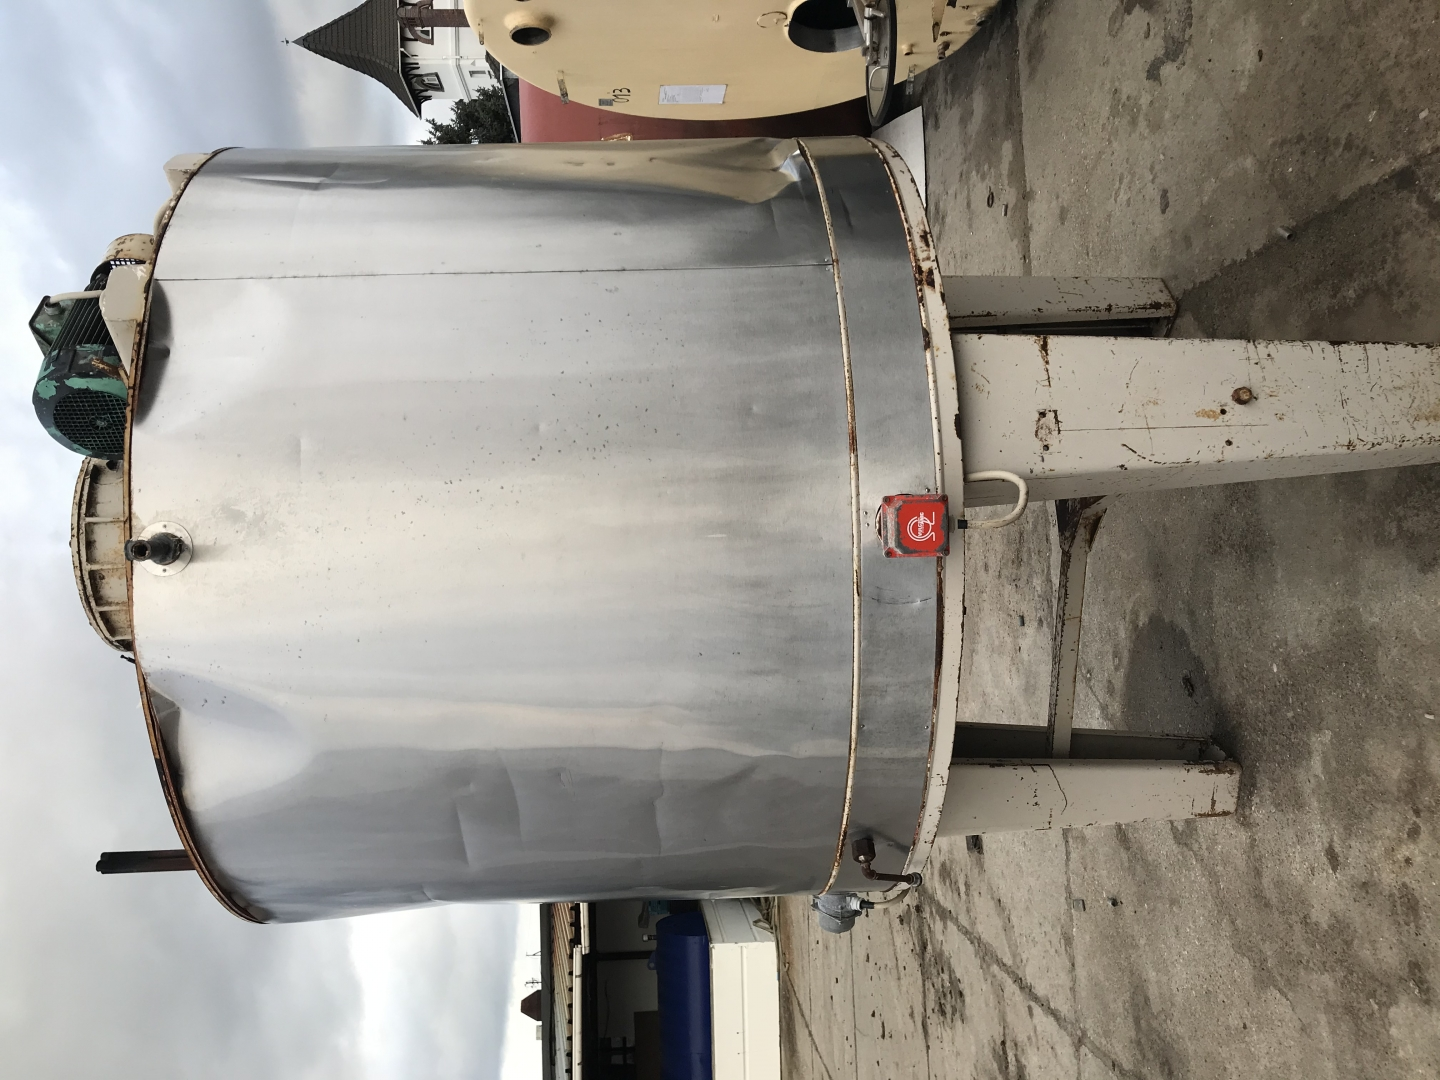 2300l insulated, heated stainless steel tank with agitator